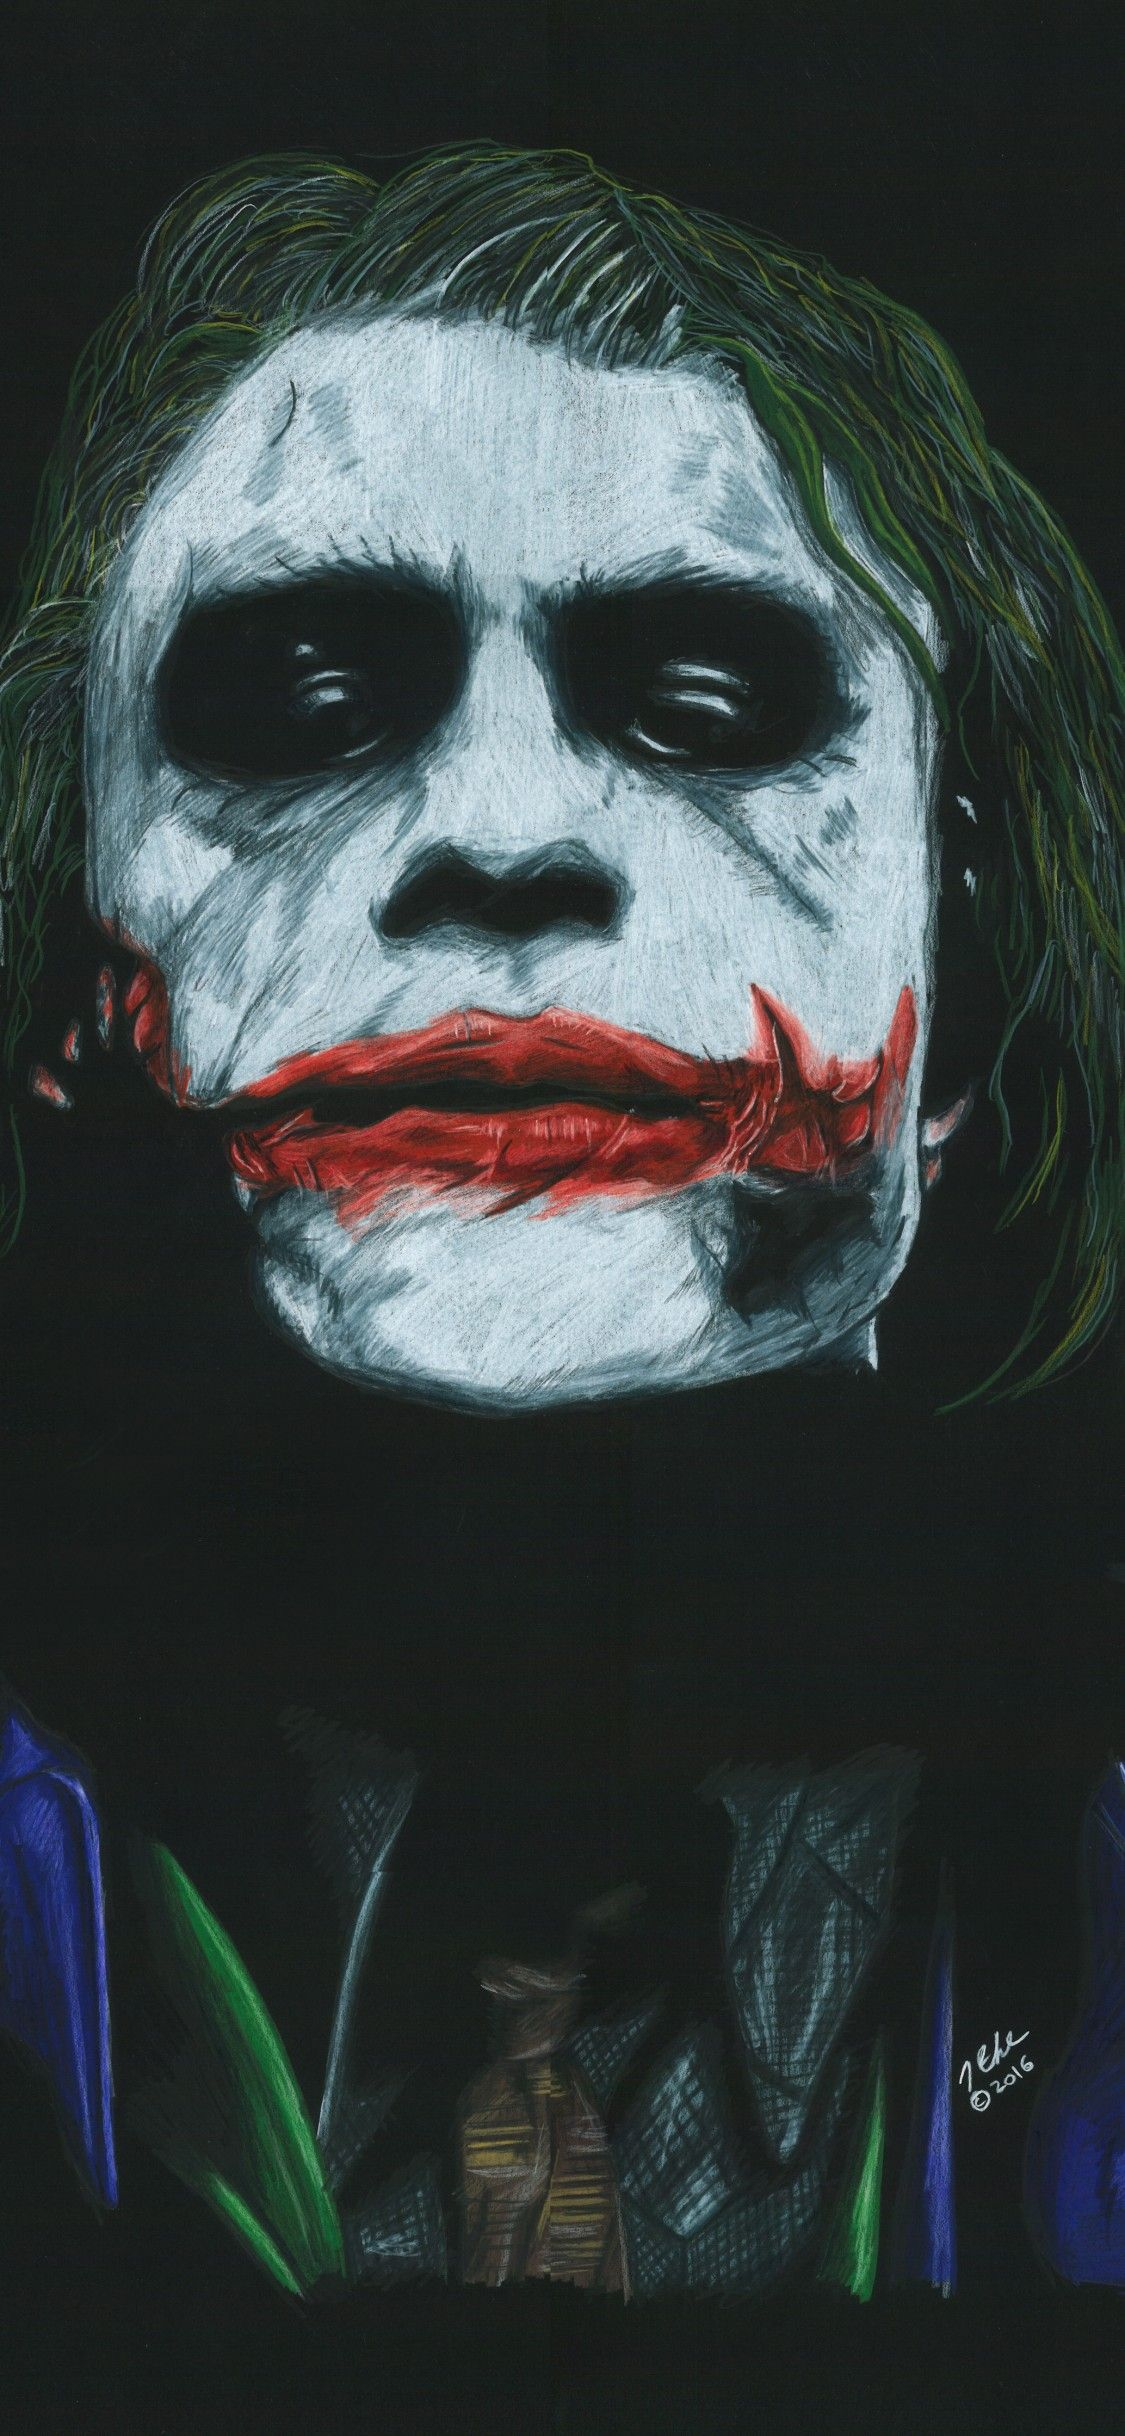 Joker Batman 4k Mobile Wallpaper Hd Wallpaper